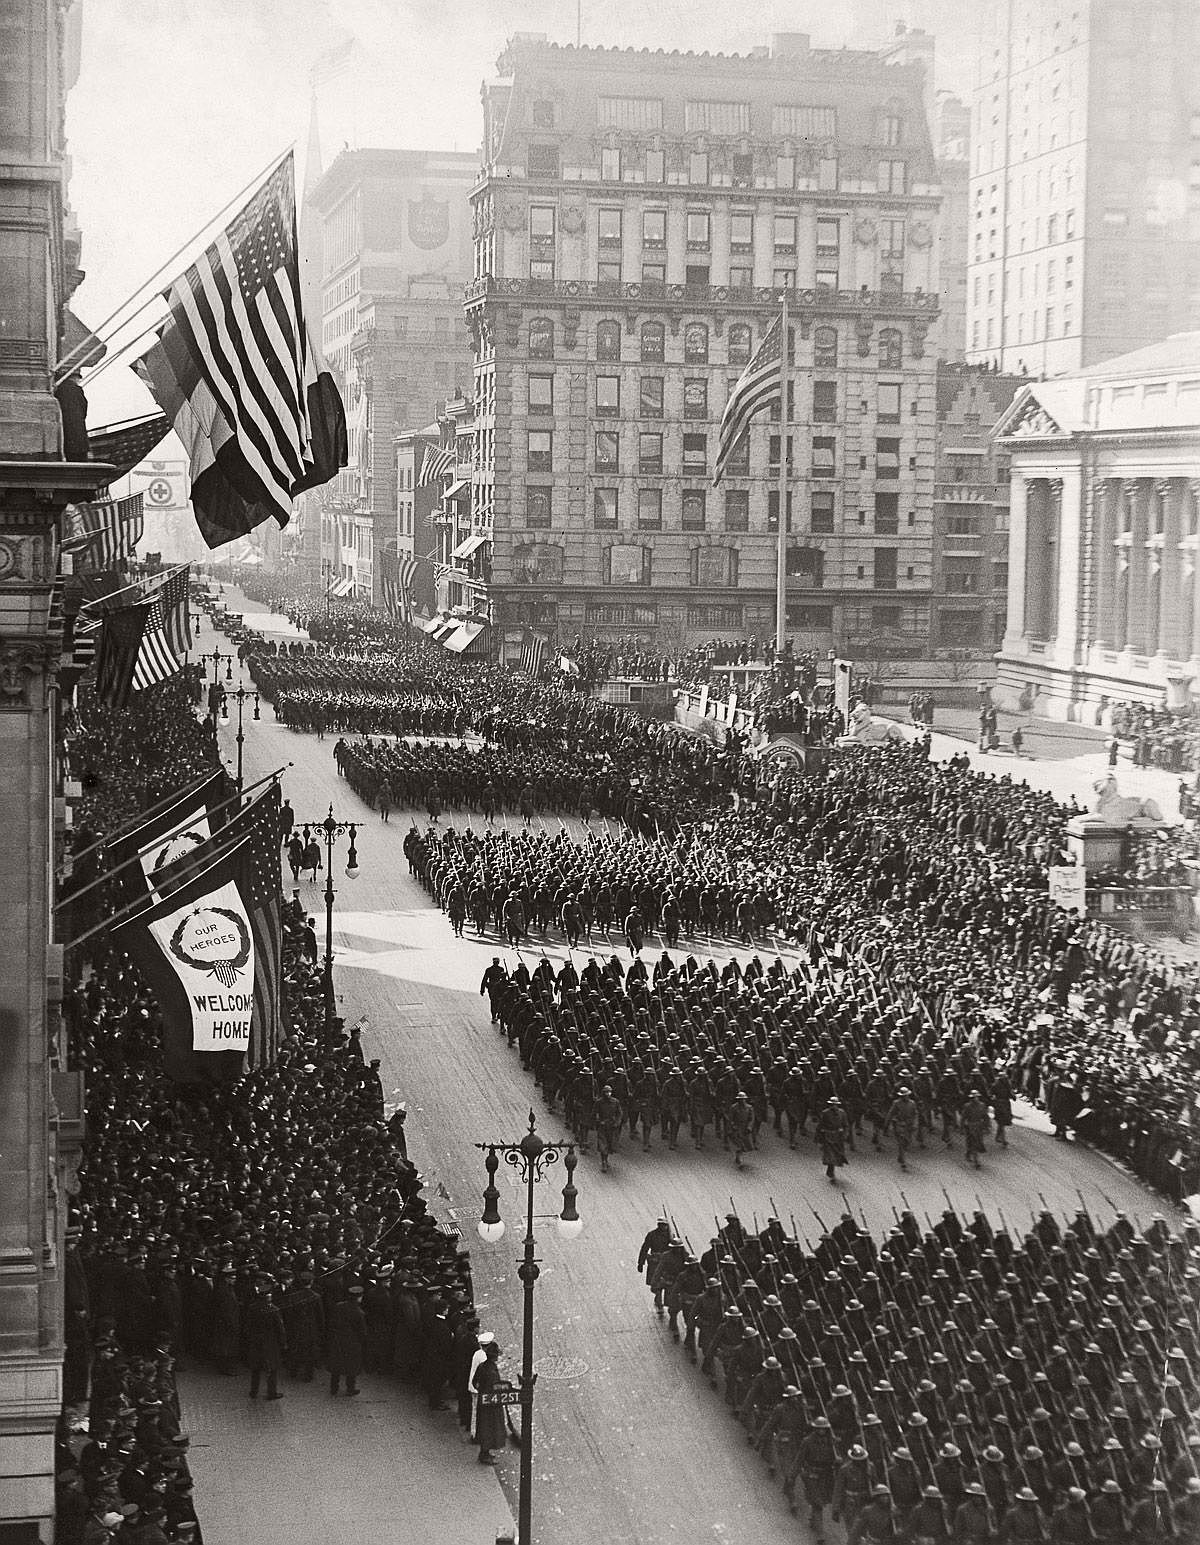 The 369th parades up Fifth Avenue upon their return to New York. Feb. 17, 1919. (FPG/Hulton Archive/Getty Images)